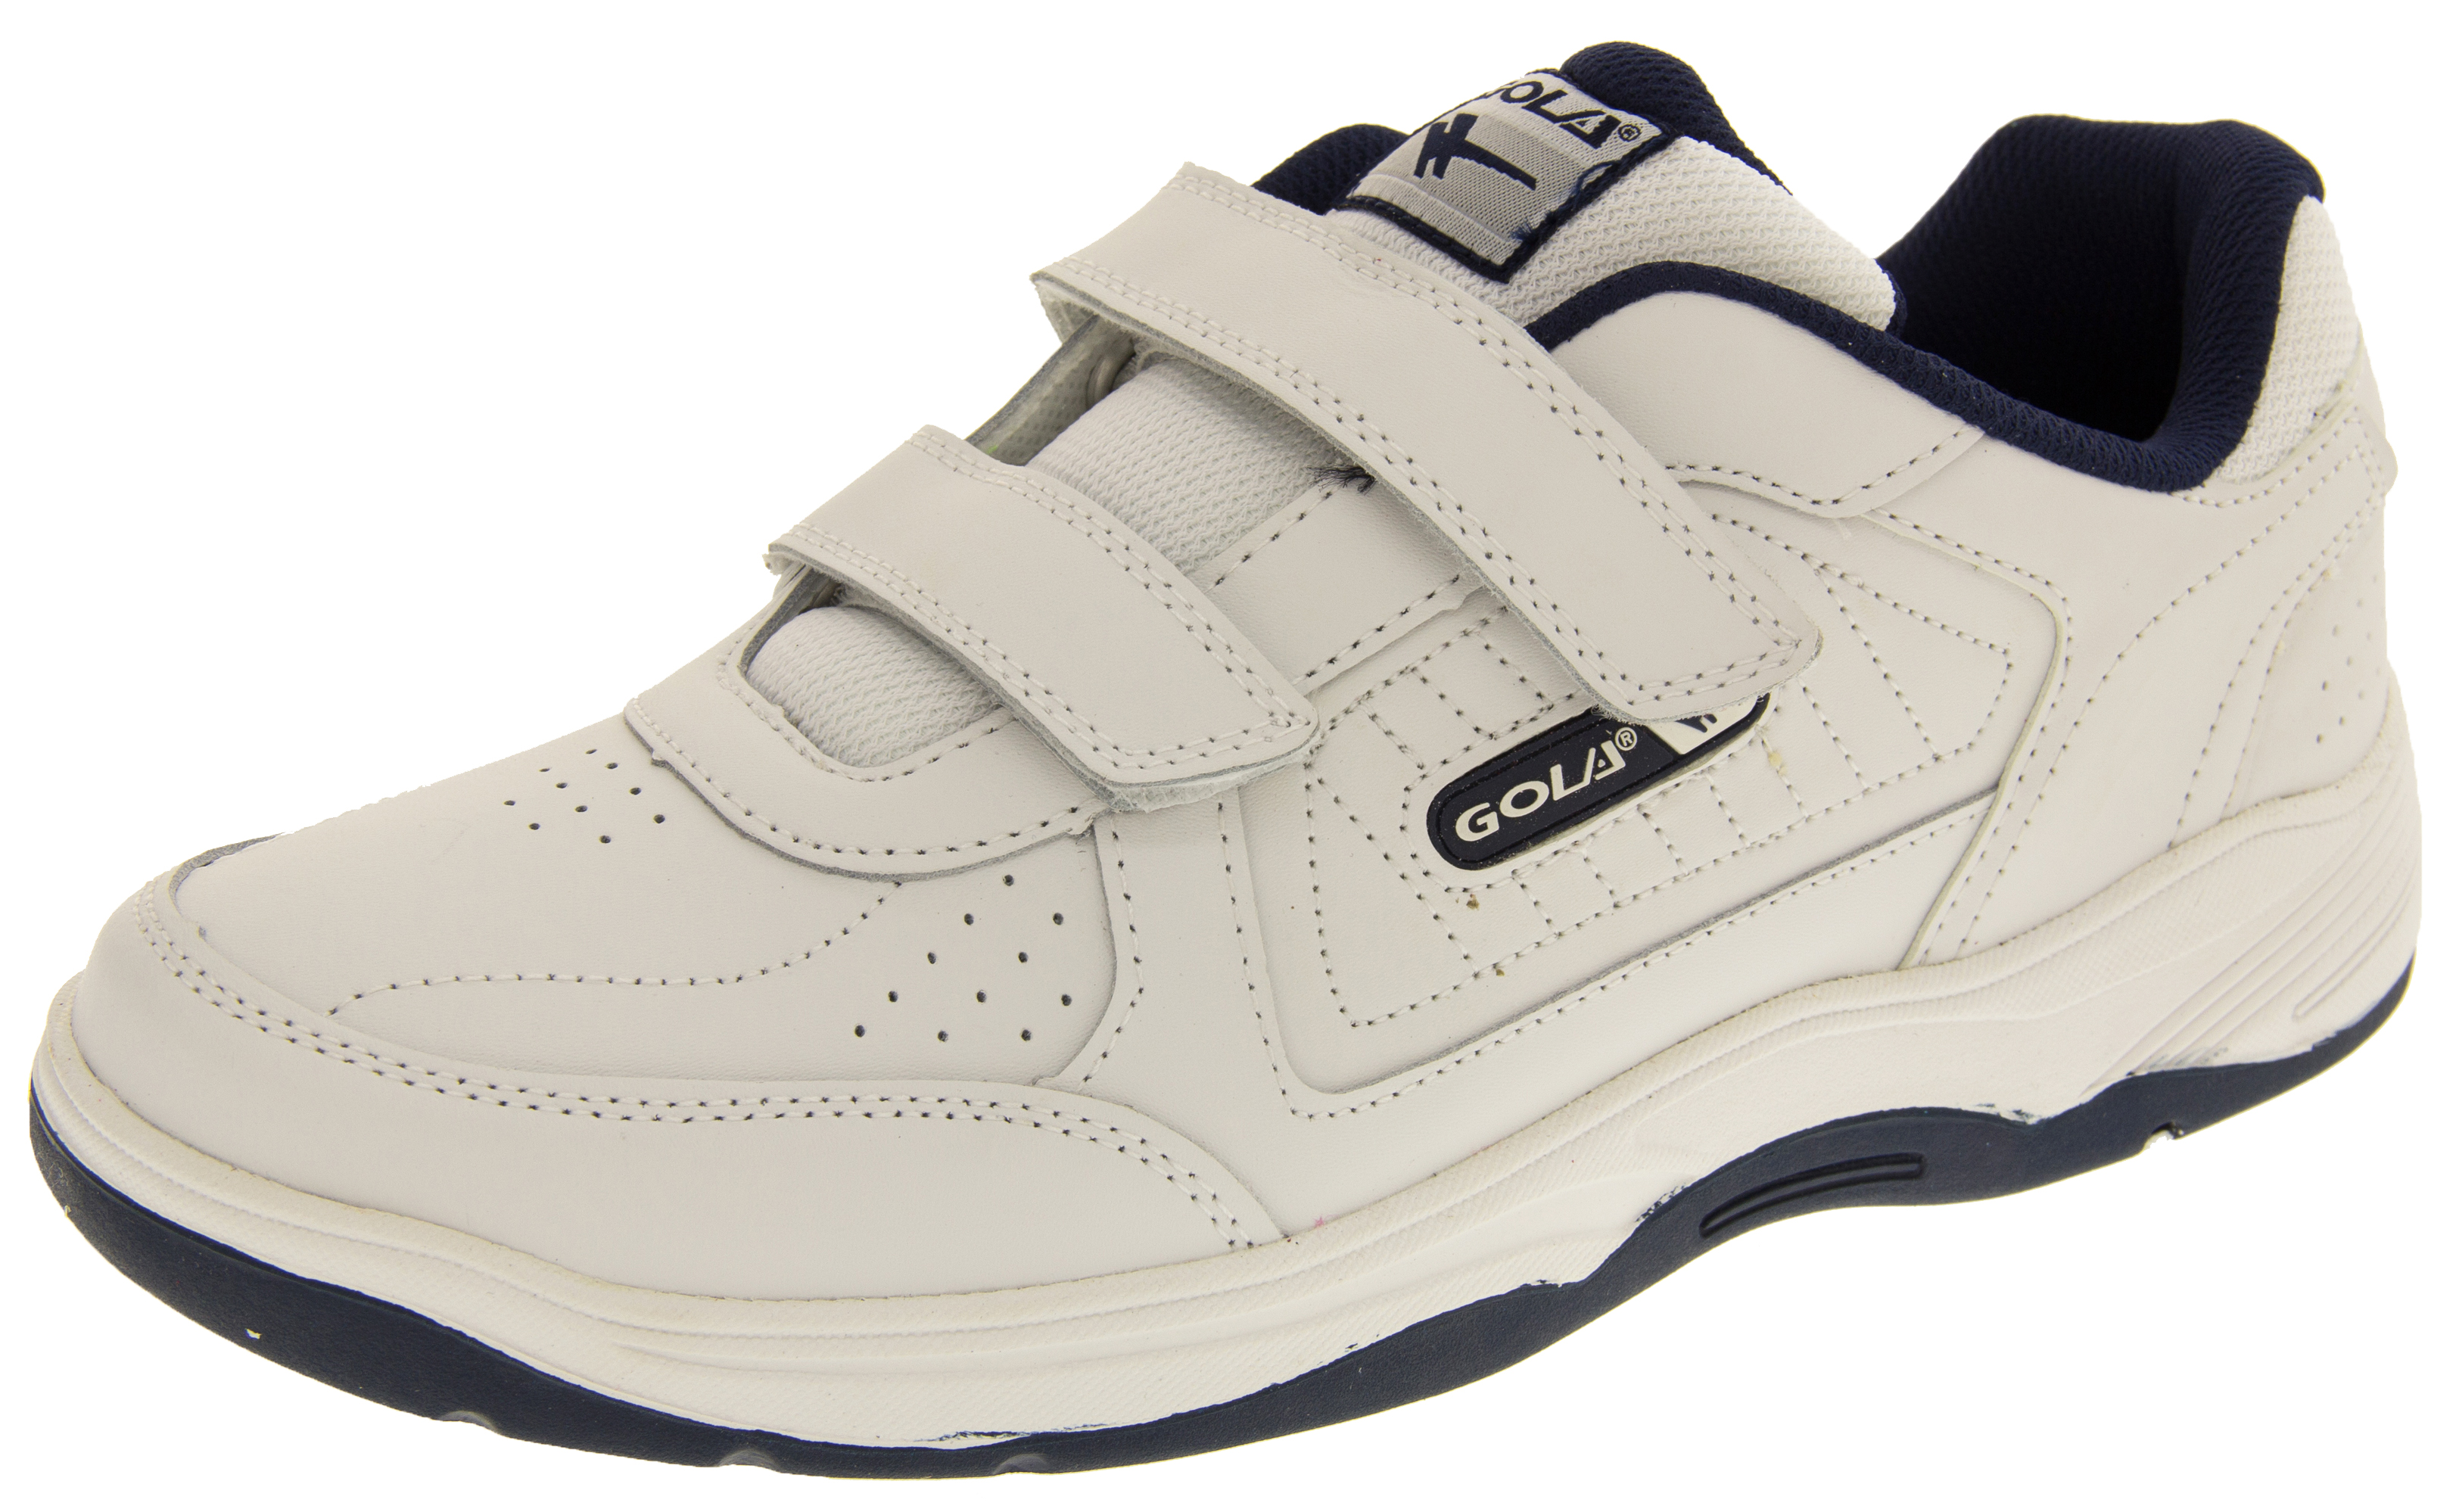 f15d31401329c Mens GOLA Wide Fit EE Leather Touch Fastening Trainers | Womens, Mens, Kids  Shoes | Heels, Trainers & Boots | Footwear Studio